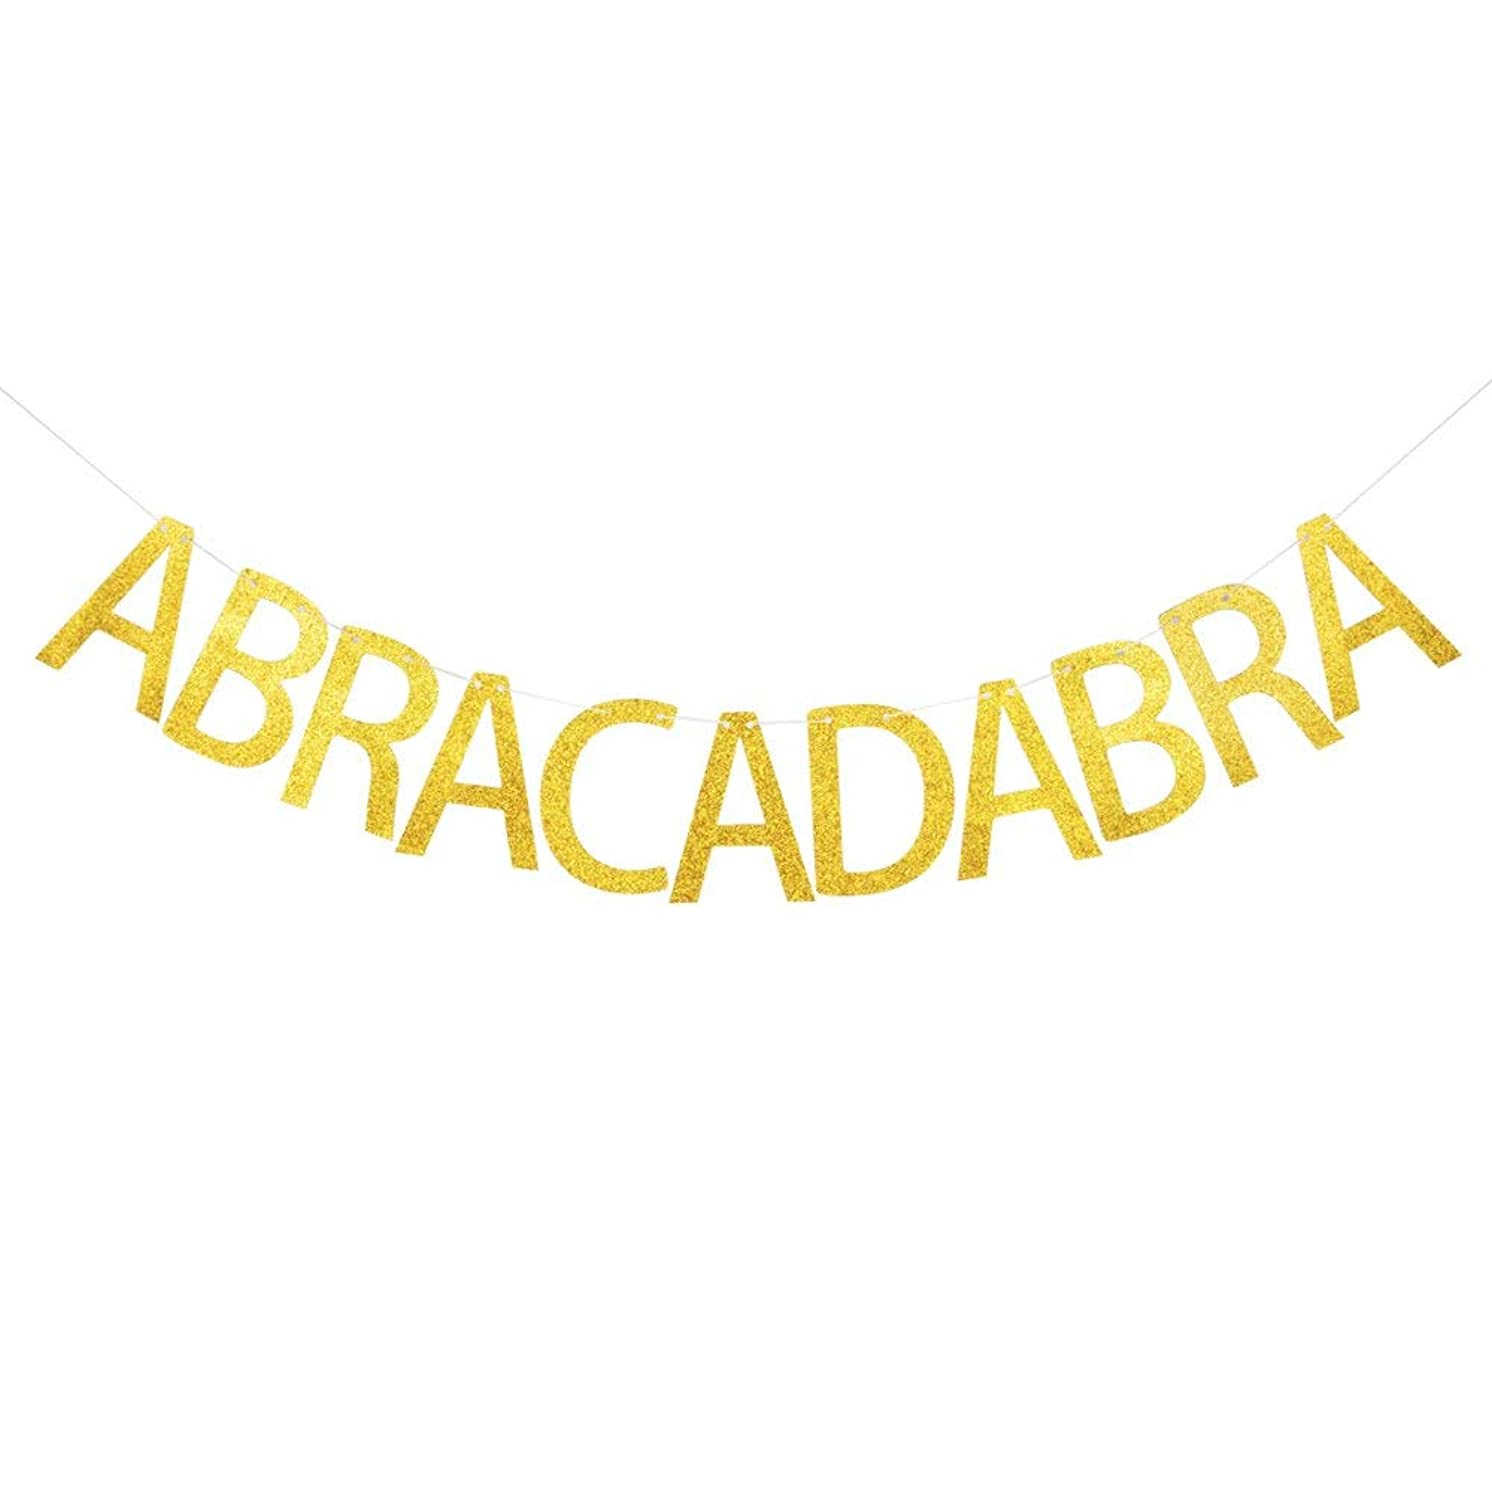 Abracadabra Banner, Gold Gliter Paper Sign Decors for Magical Themed Party